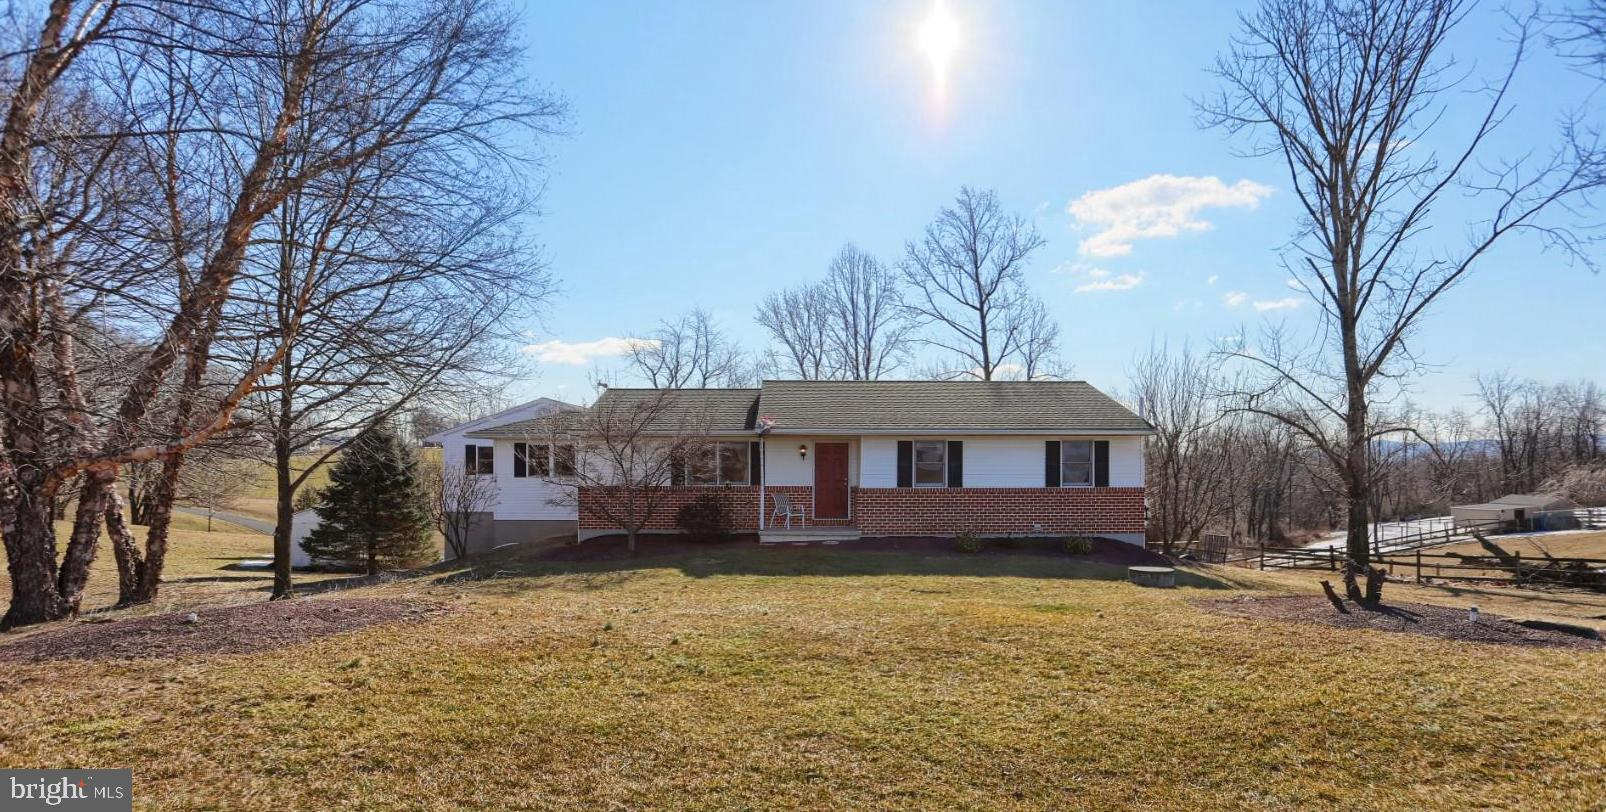 2528 BROWNSVILLE ROAD, ROBESONIA, PA 19551